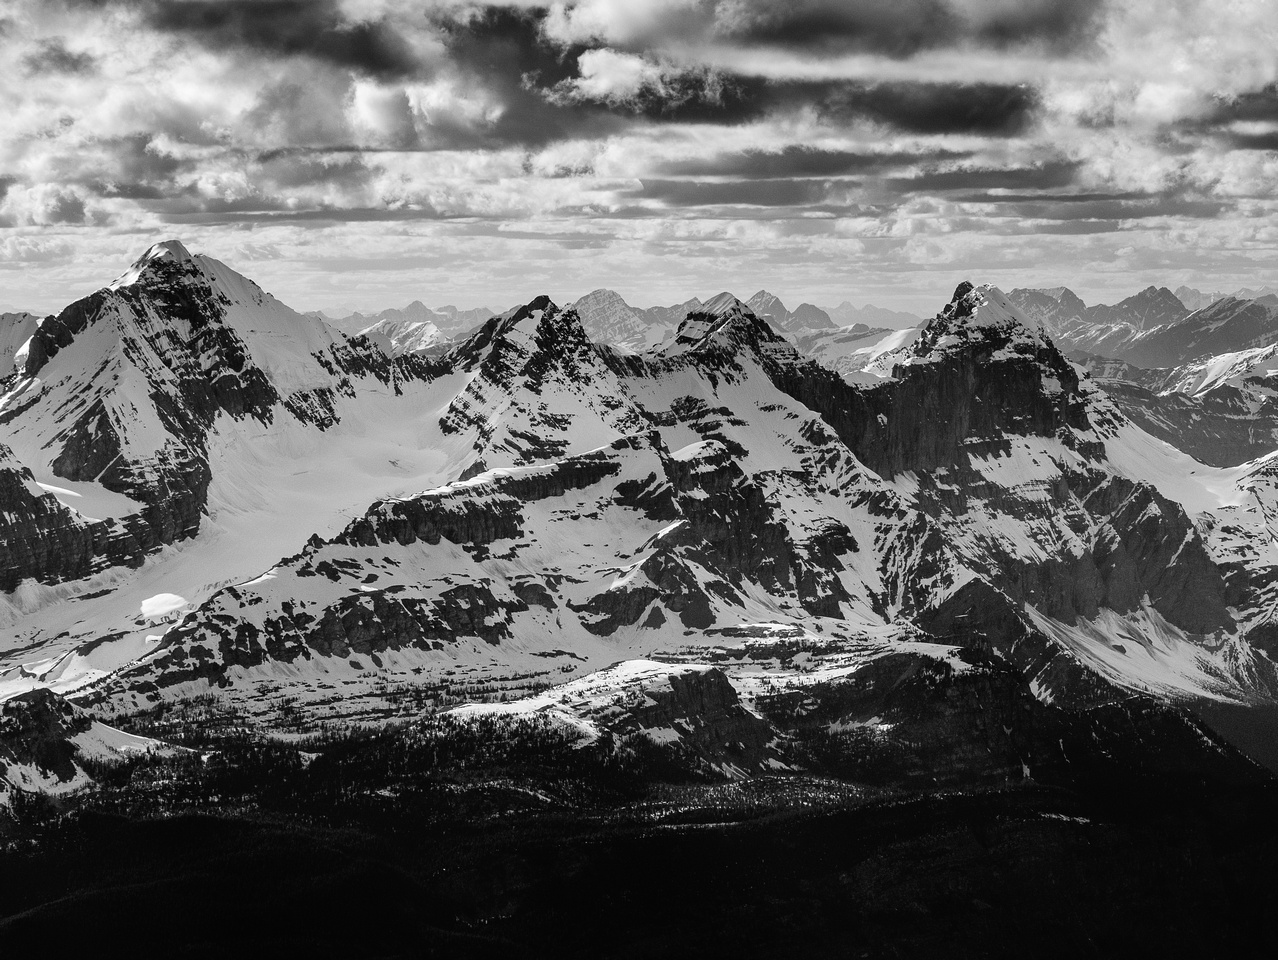 (L to R), Mount King George, Prince Albert, Prince George (foreground), Prince Edward, Prince Henry.